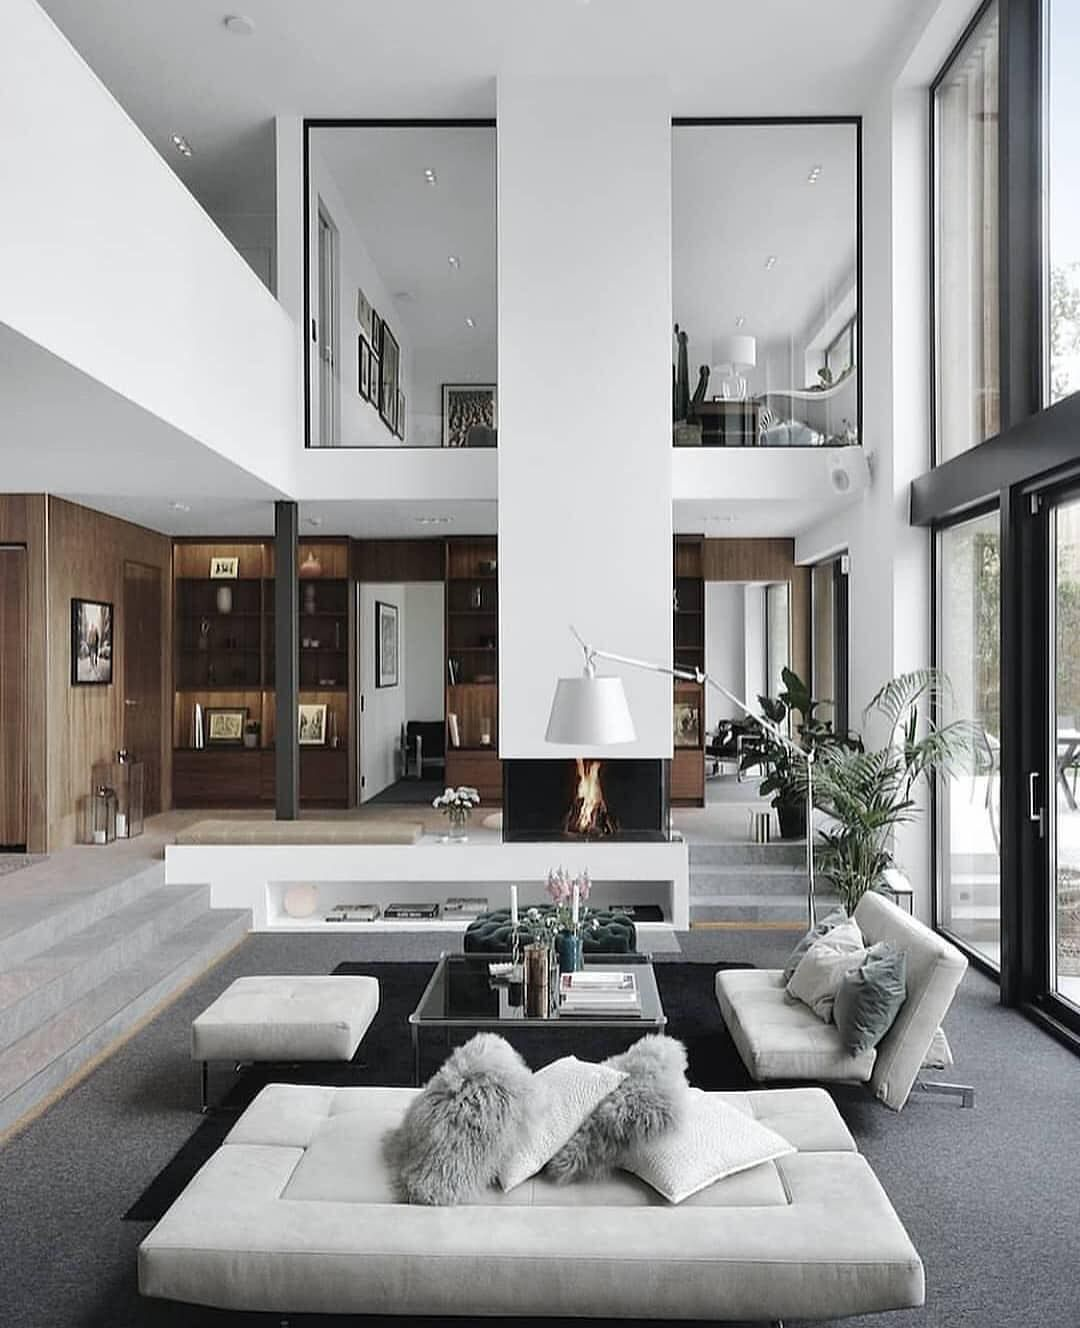 New Home Designs Latest Luxury Living Rooms Interior: Interiors On Instagram: €�What Do You